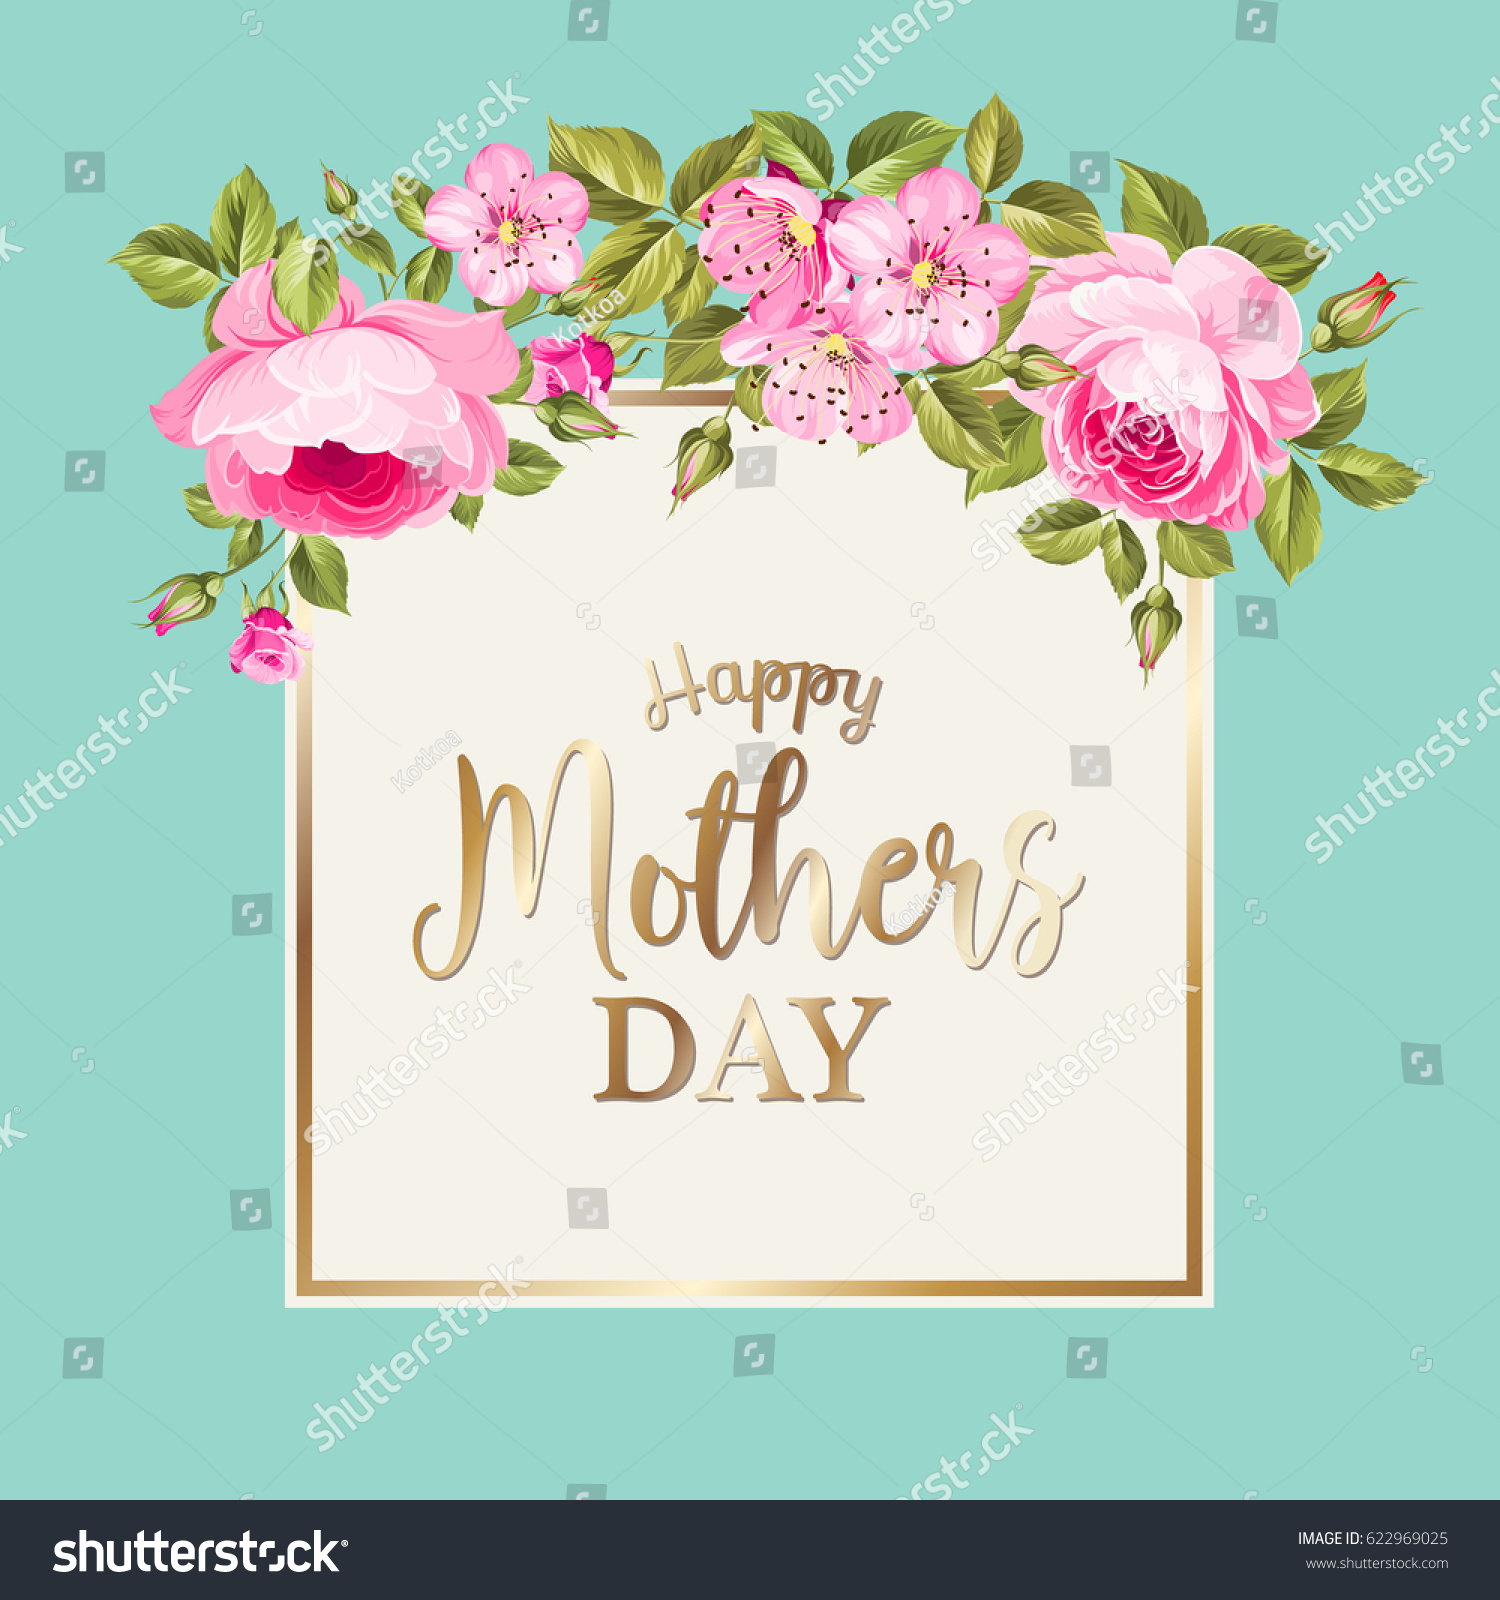 Happy mothers day greeting card red stock vector 622969025 happy mothers day greeting card with red rose garland text rectangle golden border and kristyandbryce Image collections